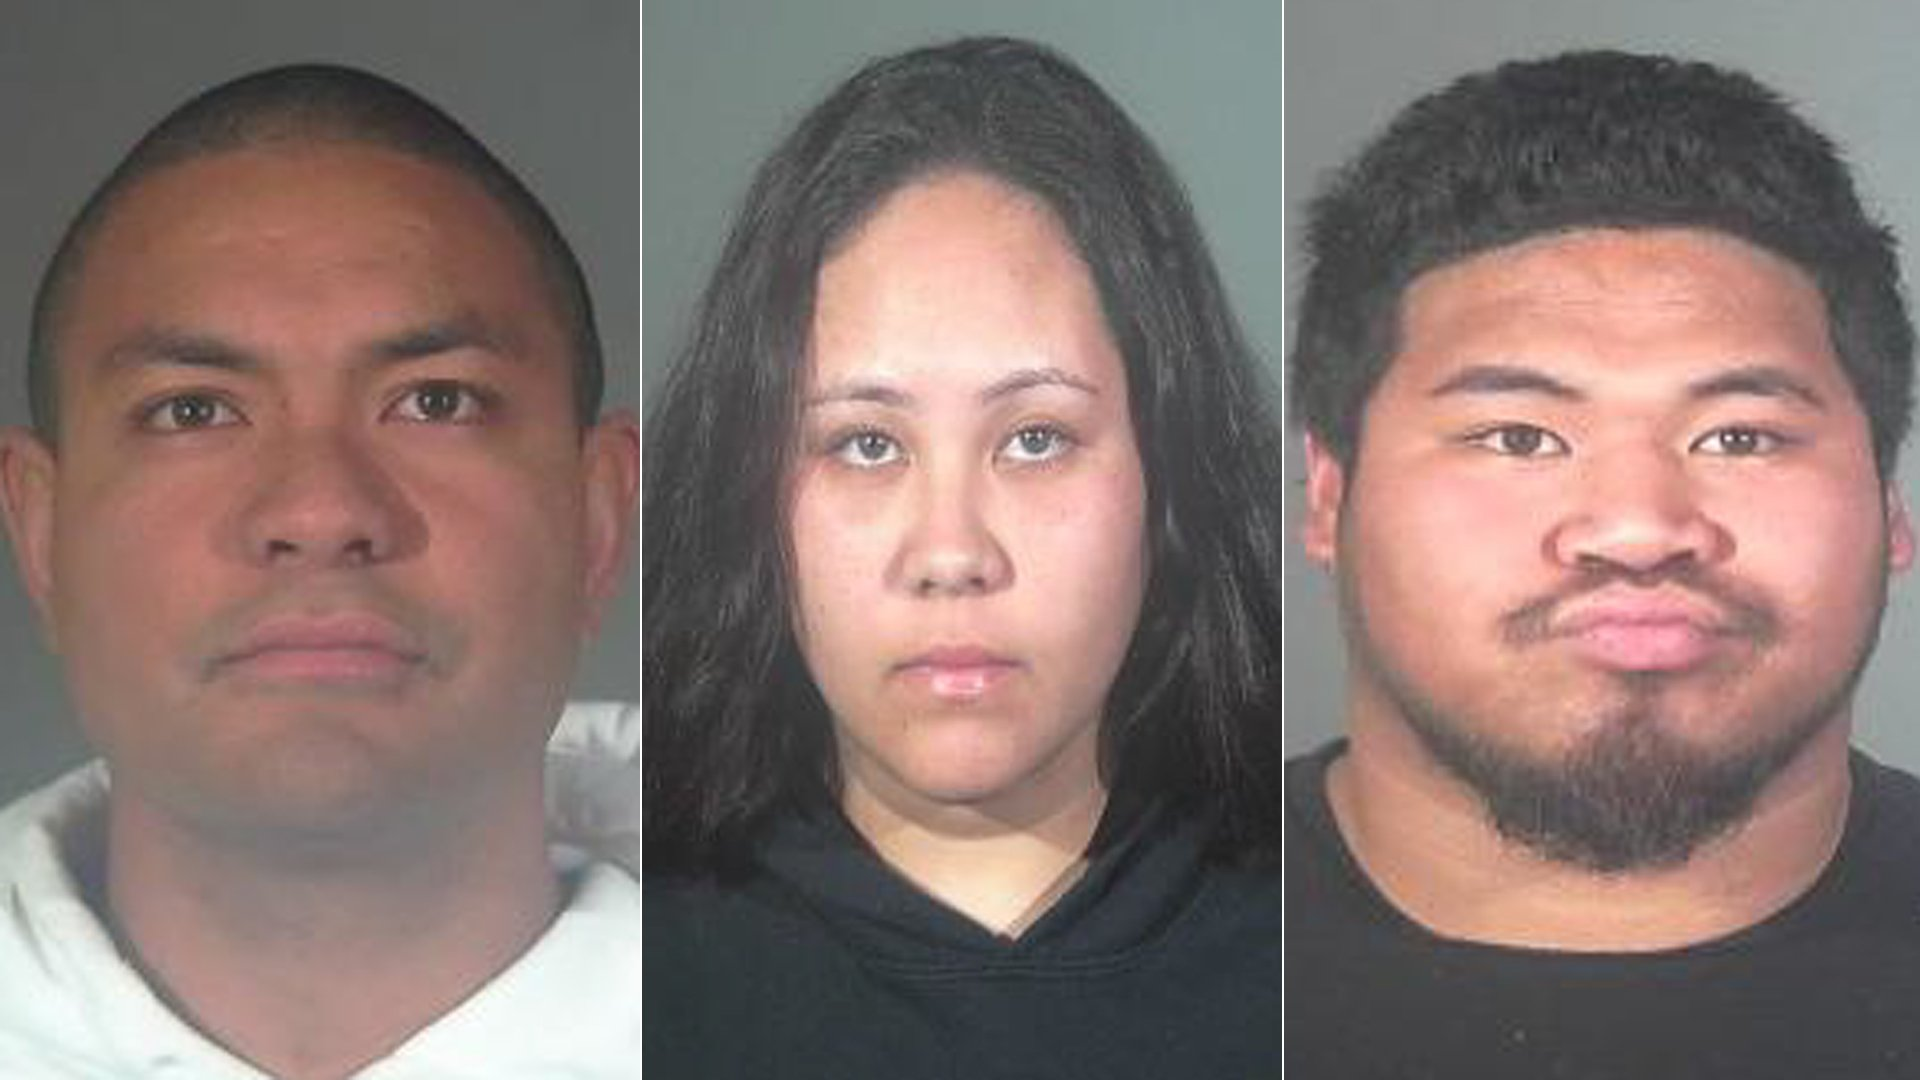 From left, Sekope Tuitavuki, Jordyn Kolone and William Satuala are seen in booking photos released by the Torrance Police Department.